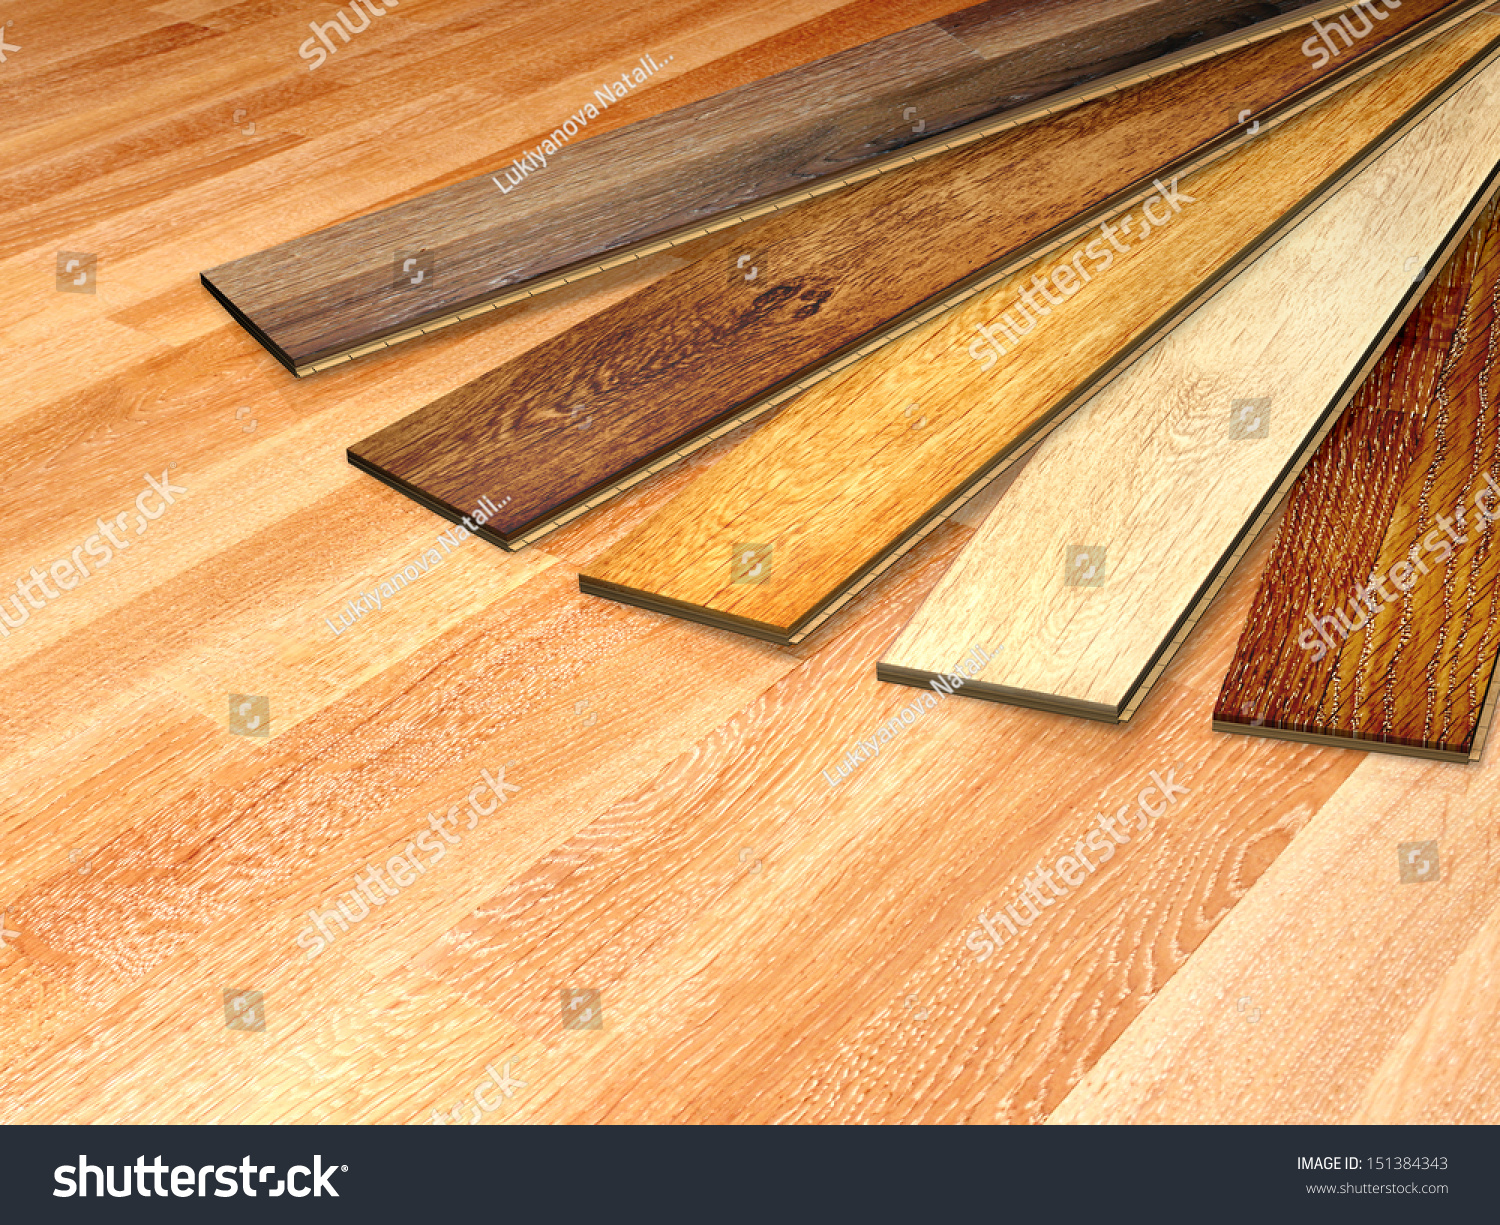 new oak parquet different colors stock illustration 151384343 shutterstock. Black Bedroom Furniture Sets. Home Design Ideas